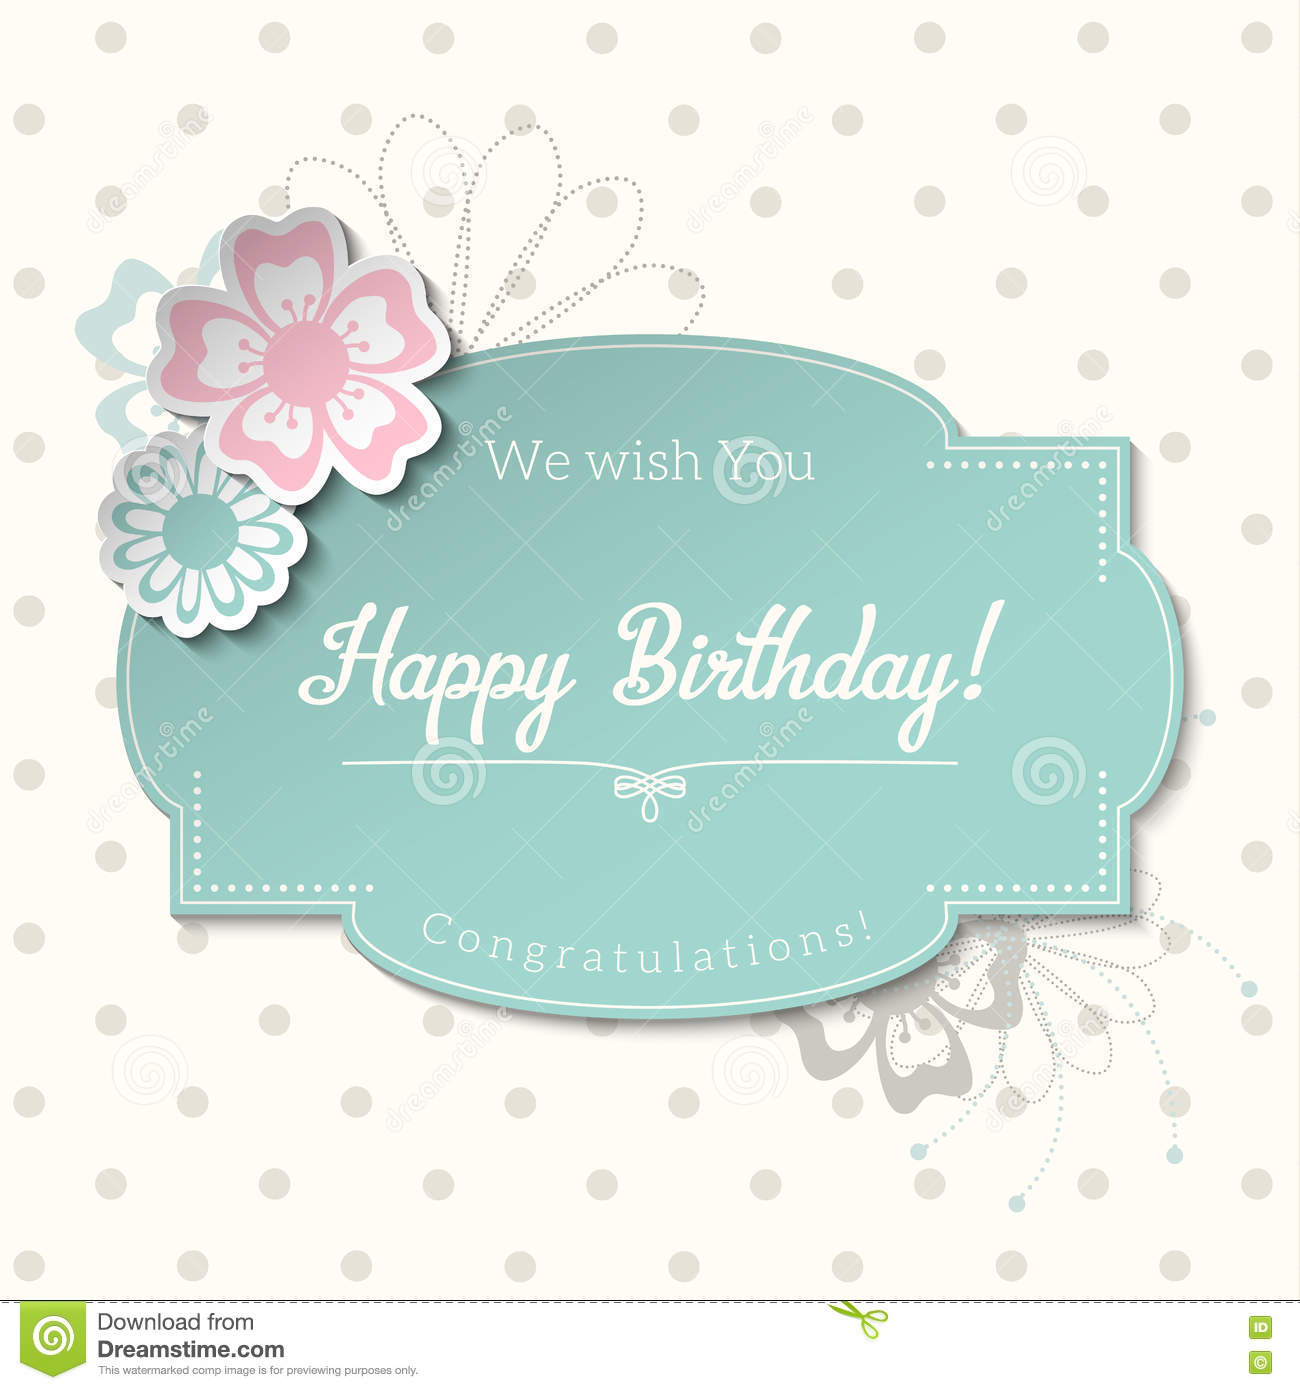 Vintage Greeting Card In Shabby Chic Style With Text Happy Birthday Illustration Stock Vector Illustration Of Celebrate Beige 72341079